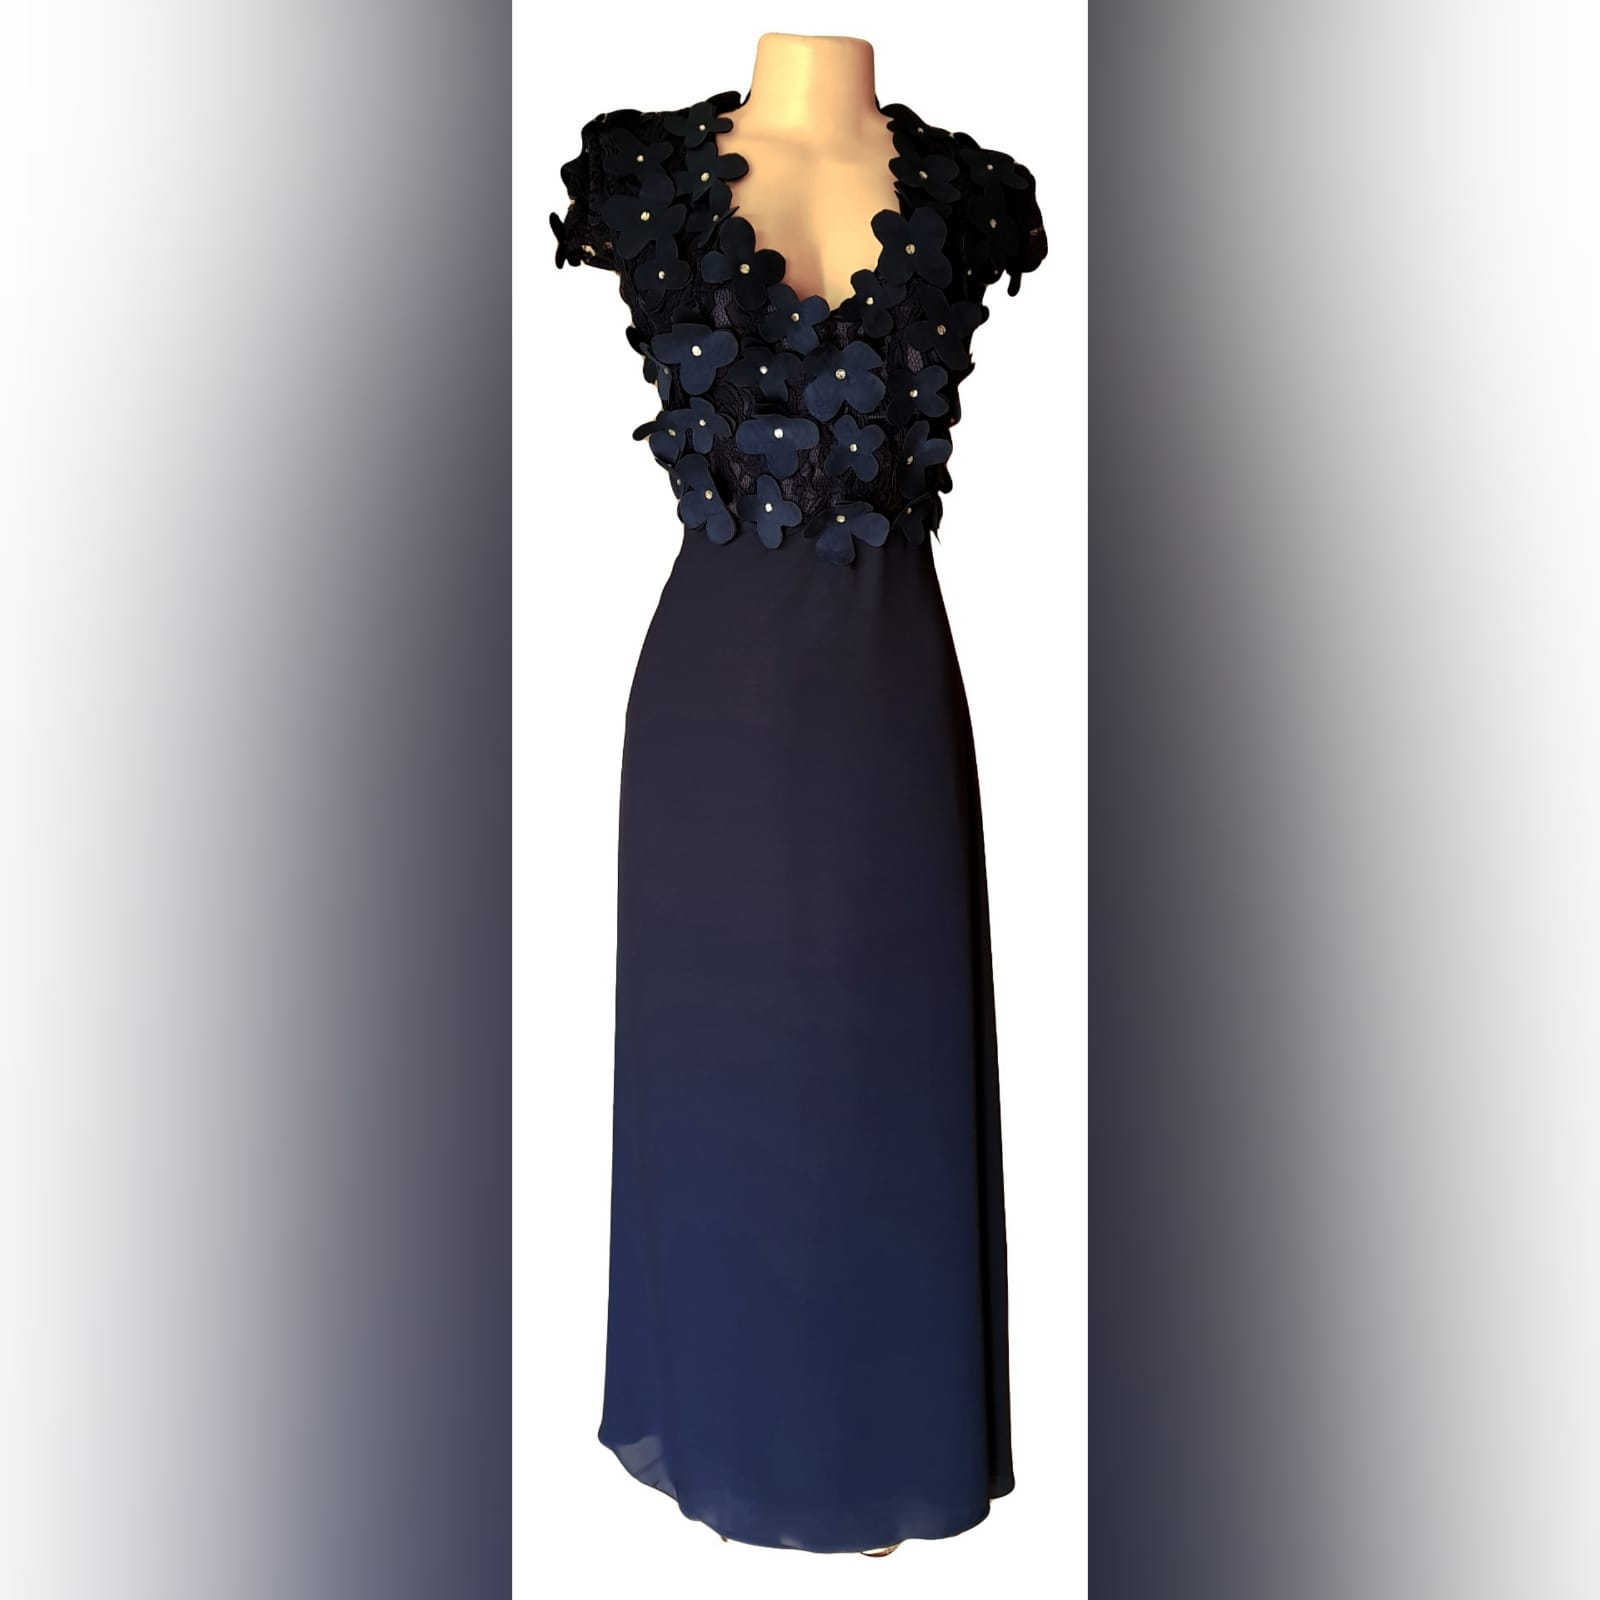 Navy blue long evening dress bodice 2 navy blue long evening dress bodice in lace with 3d suede flowers, detailed with silver beads.